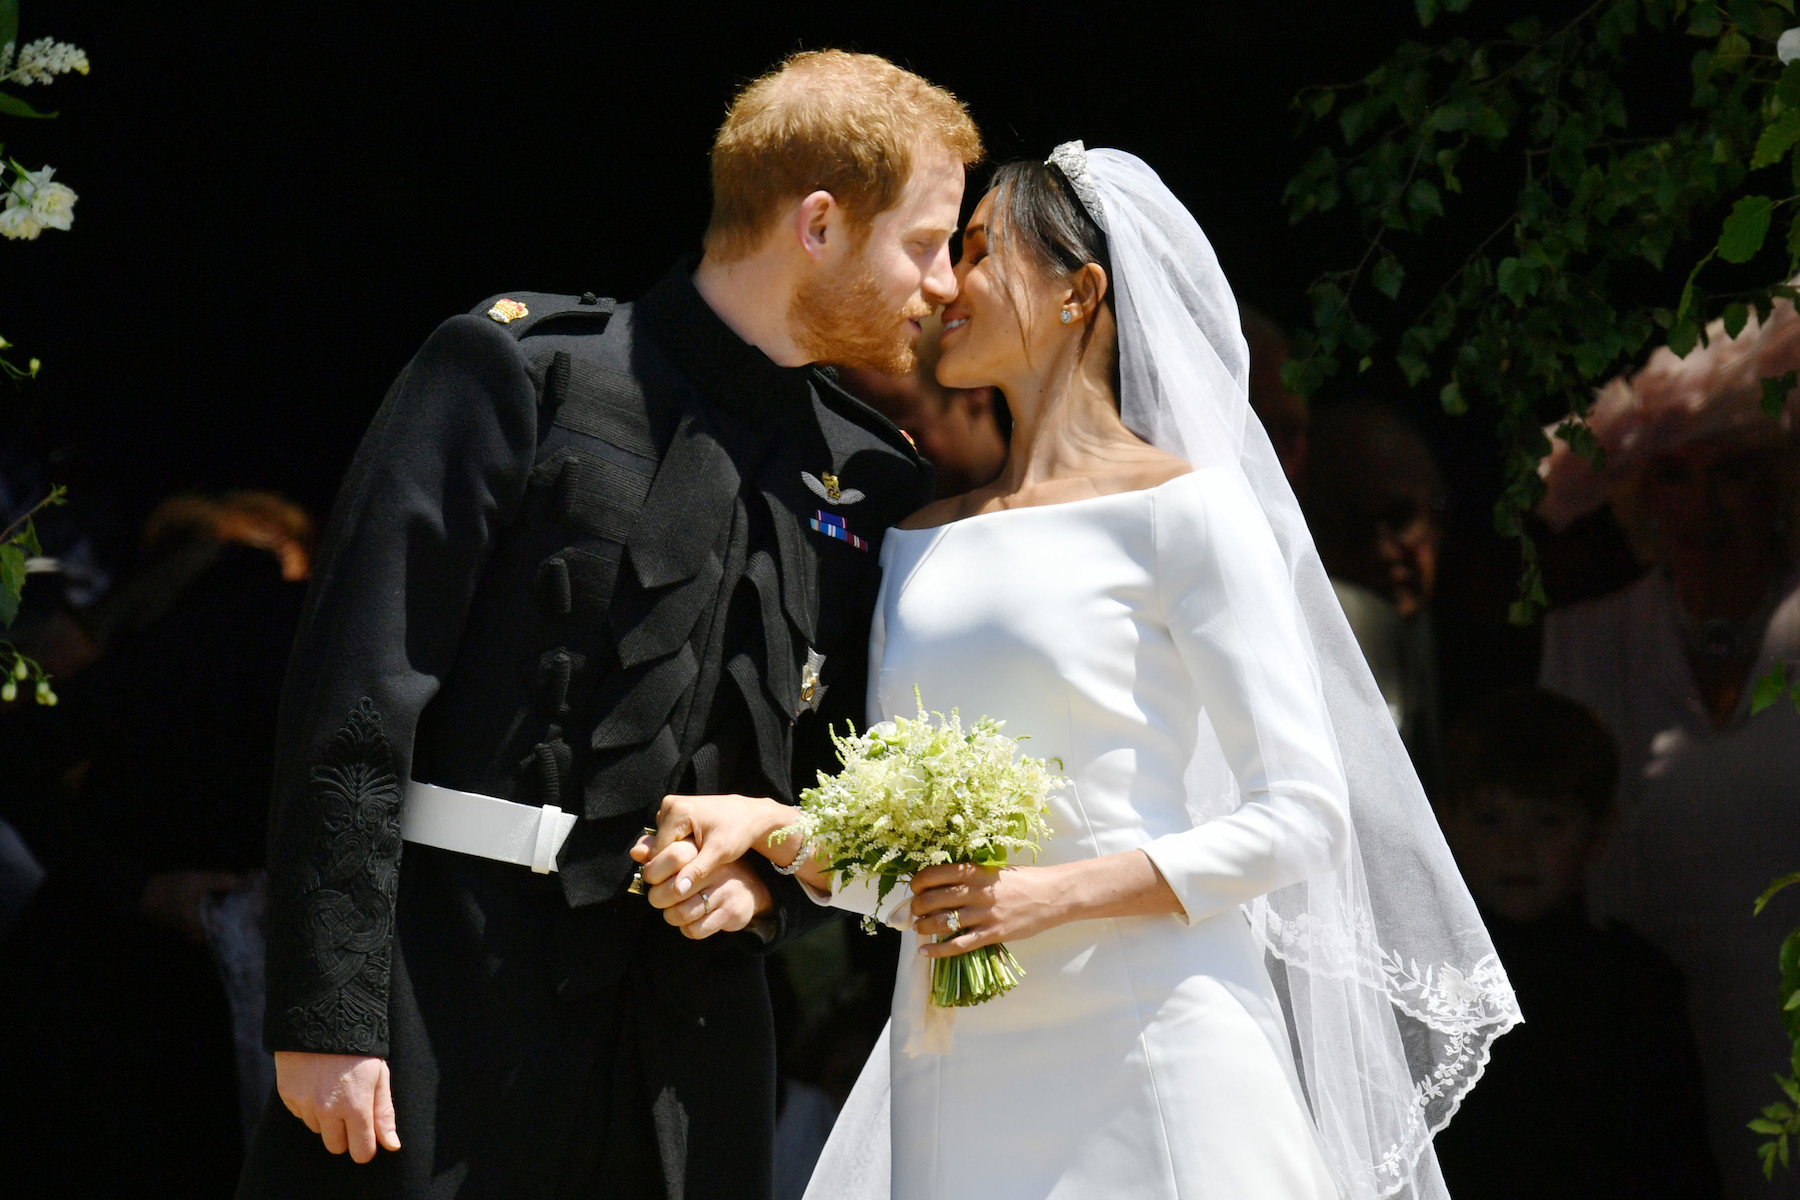 "<div class=""meta image-caption""><div class=""origin-logo origin-image kabc""><span>kabc</span></div><span class=""caption-text"">Britain's Prince Harry, Duke of Sussex kisses his wife Meghan, Duchess of Sussex as they leave from the West Door of St George's Chapel. (Ben Birchall/AFP/Getty Images)</span></div>"